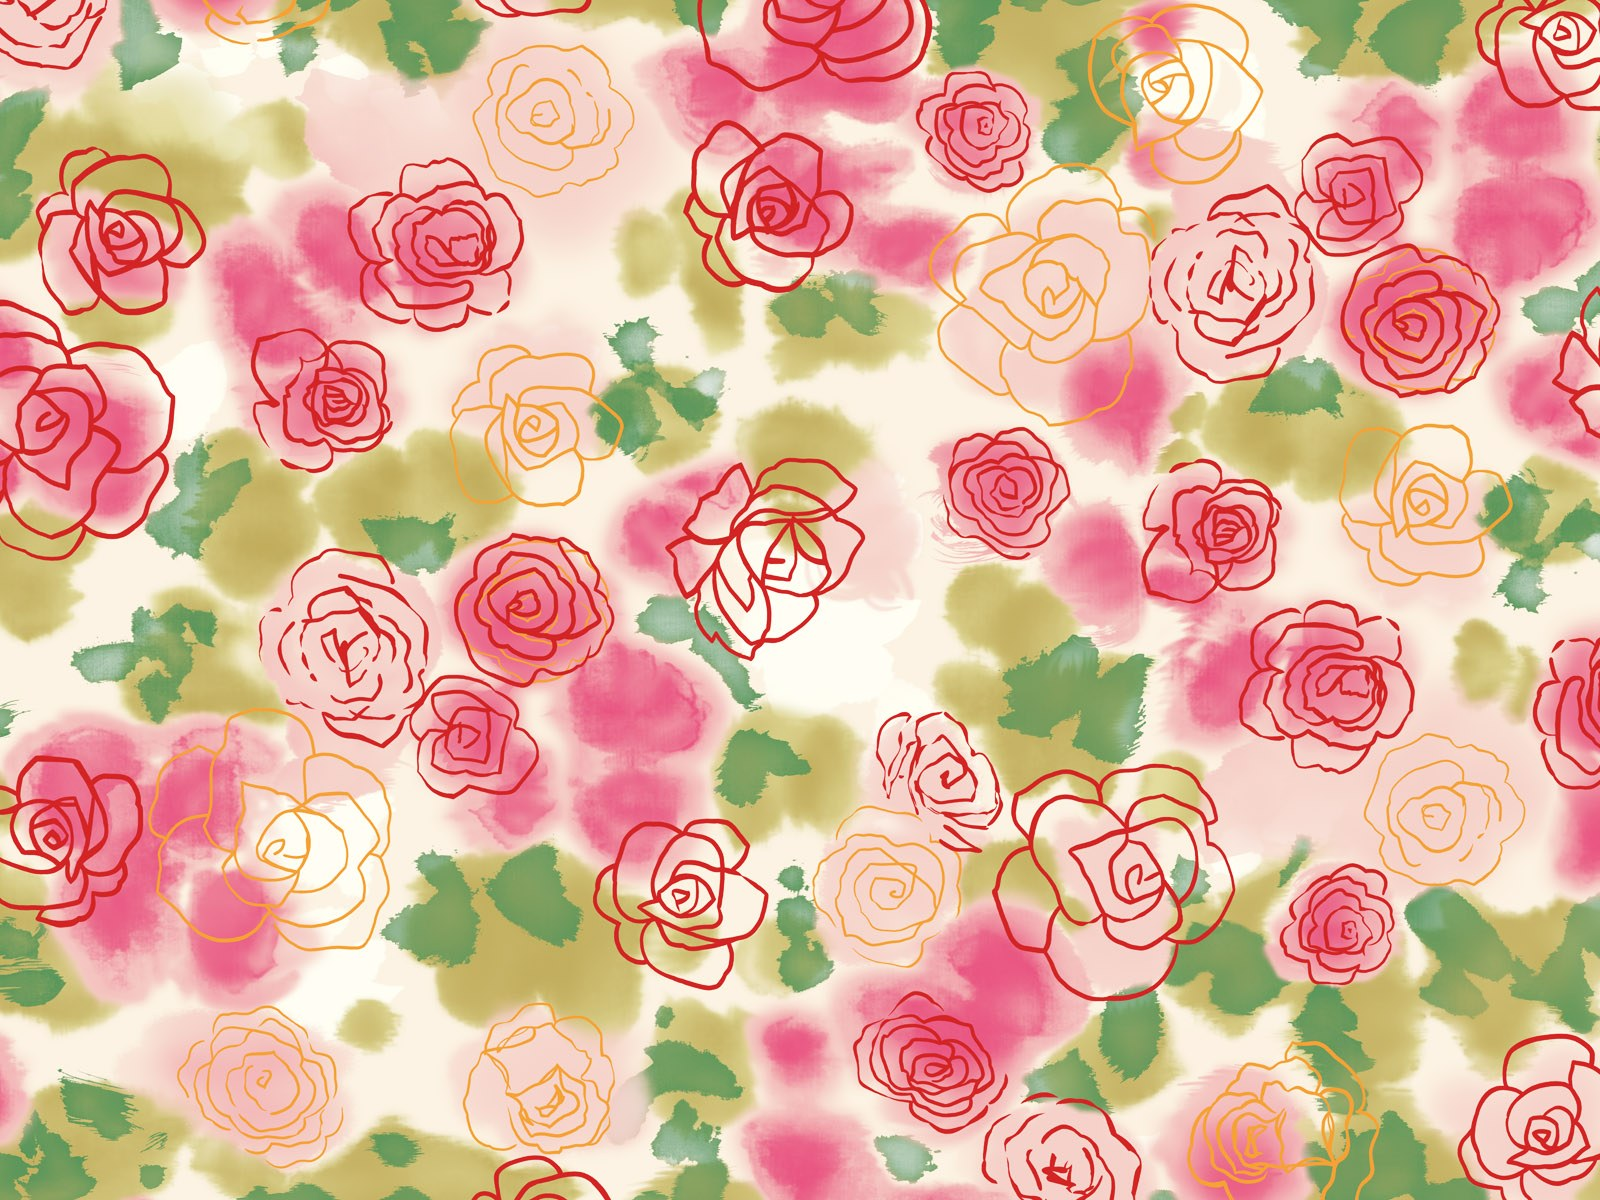 Floral Laptop Wallpaper Posted By Christopher Johnson